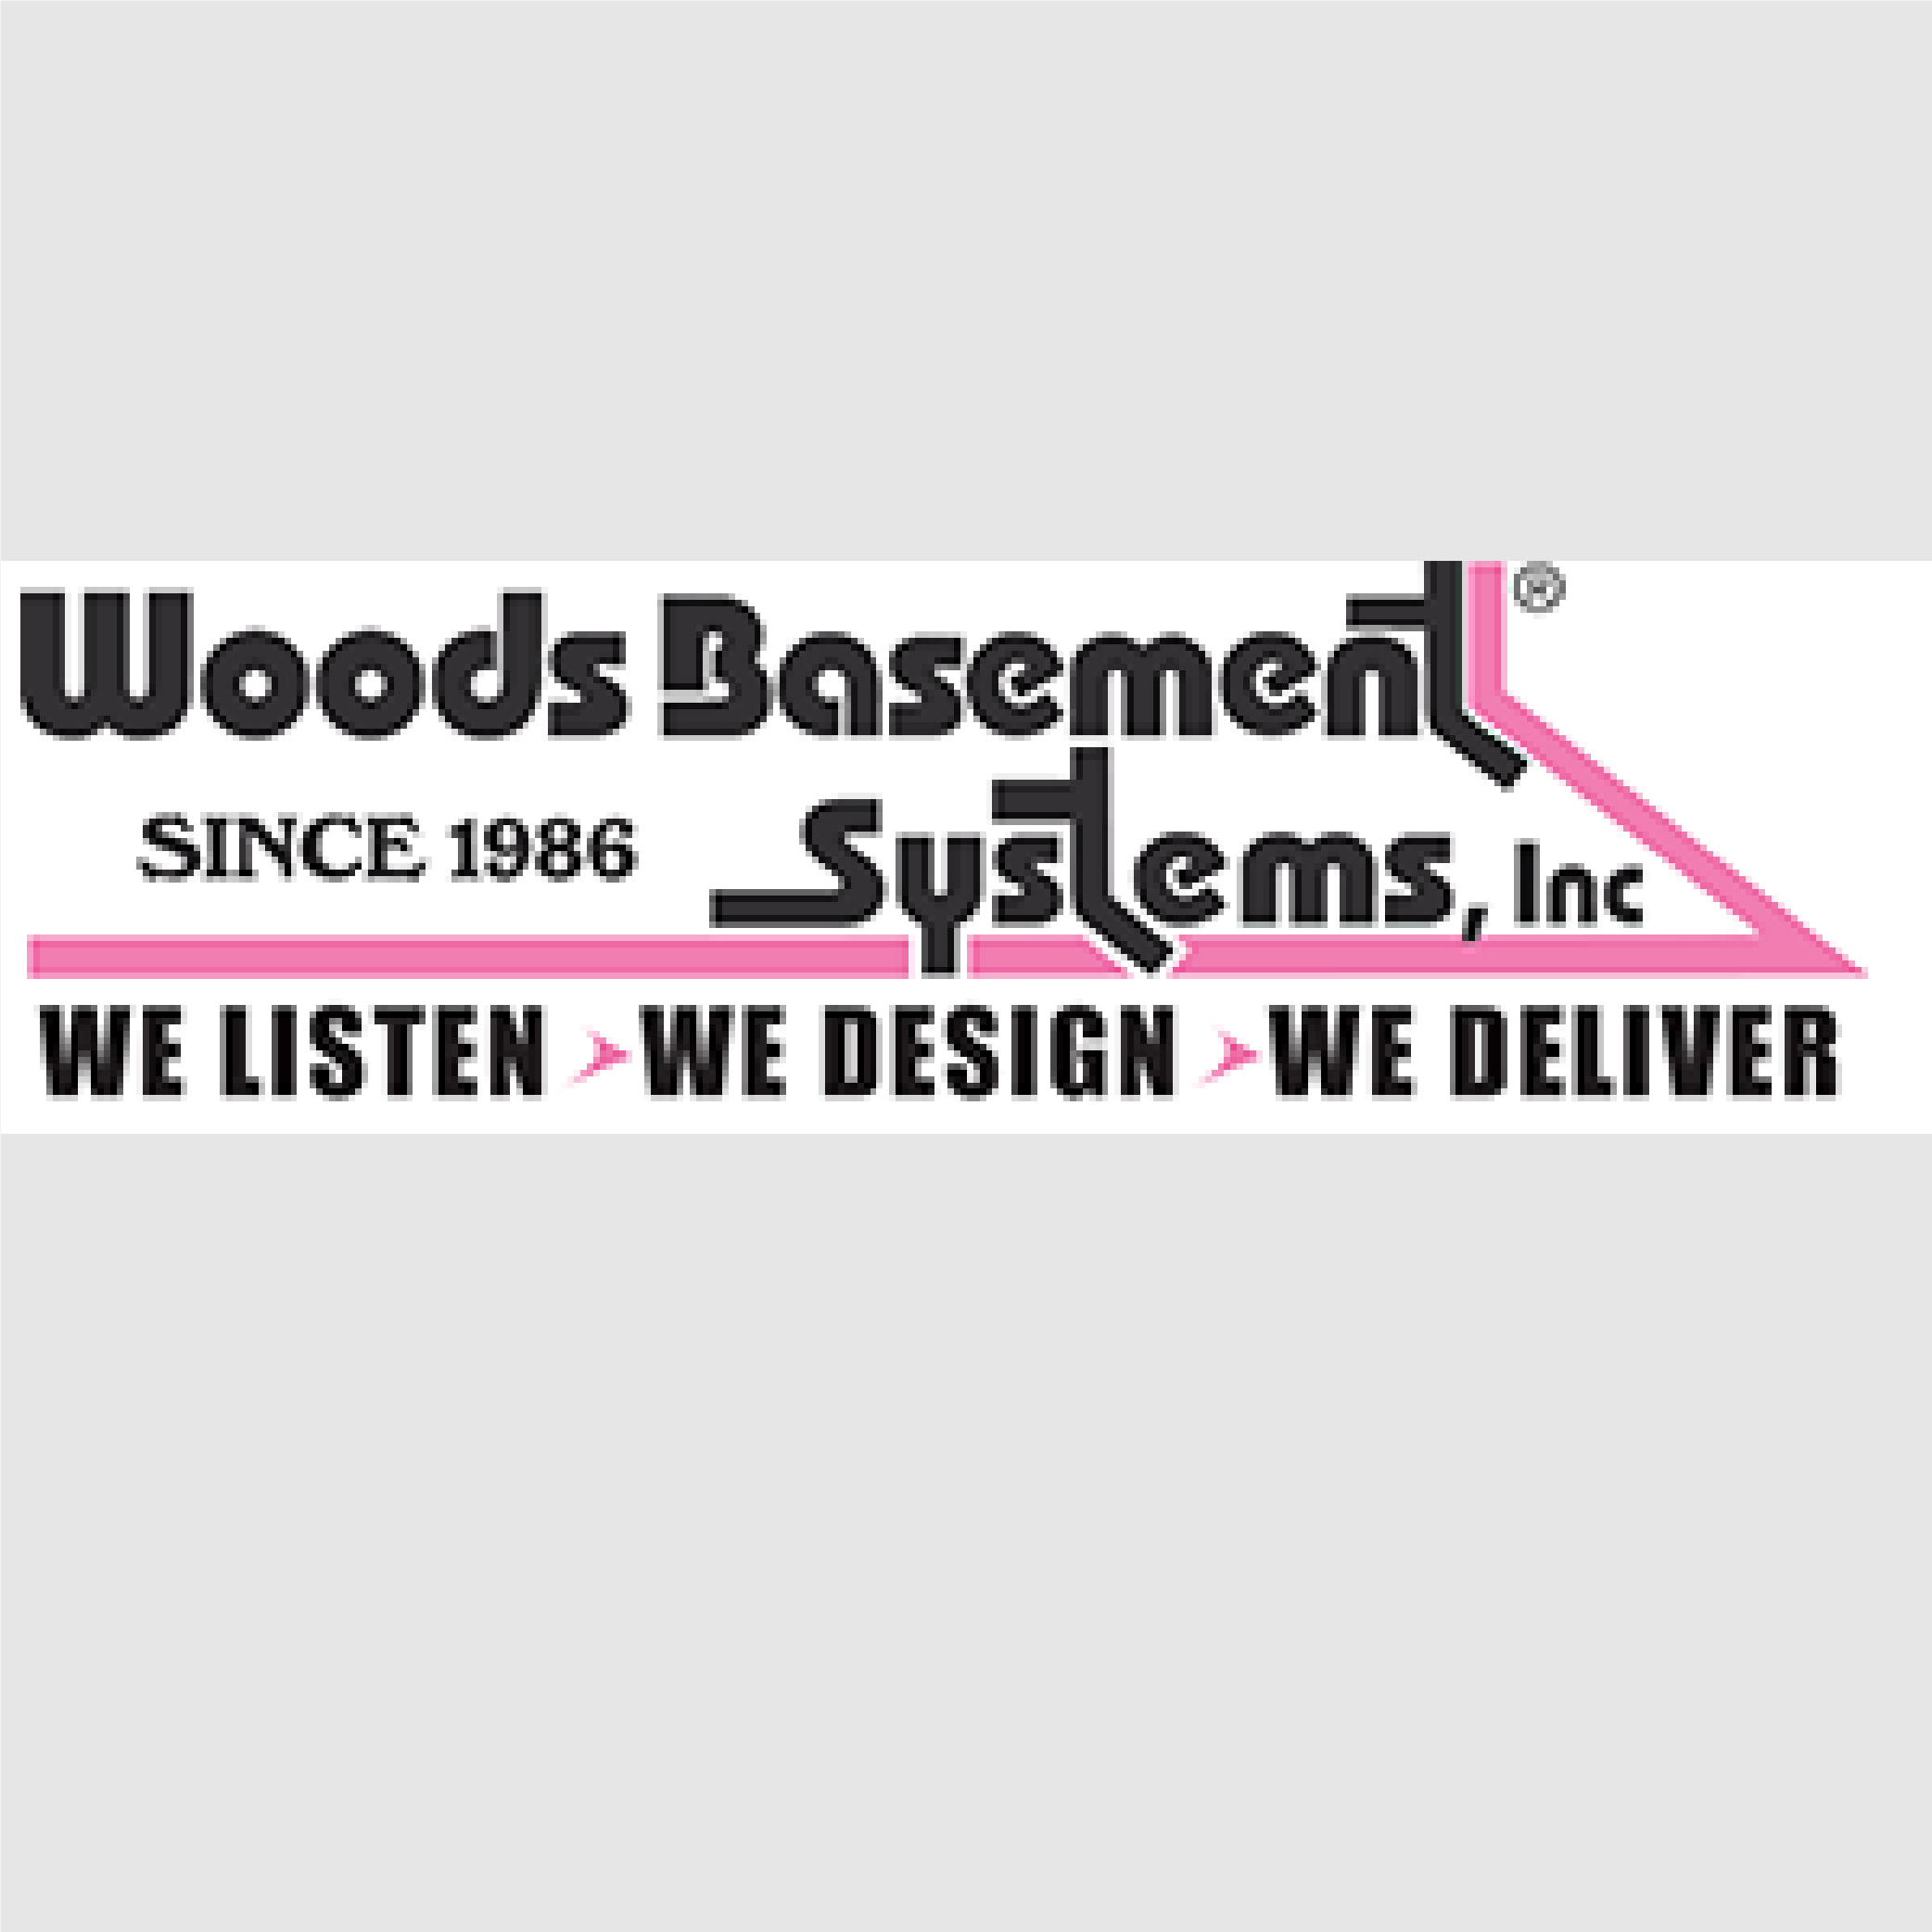 Woods Basement Systems    Dave Thompson    524 Vandalia Street    Collinsville, IL 62234-4041    (618) 344-2288    dthompson@woodsbasementsystems.com     http://www.woodsbasementsystems.com     Member Since: 2003